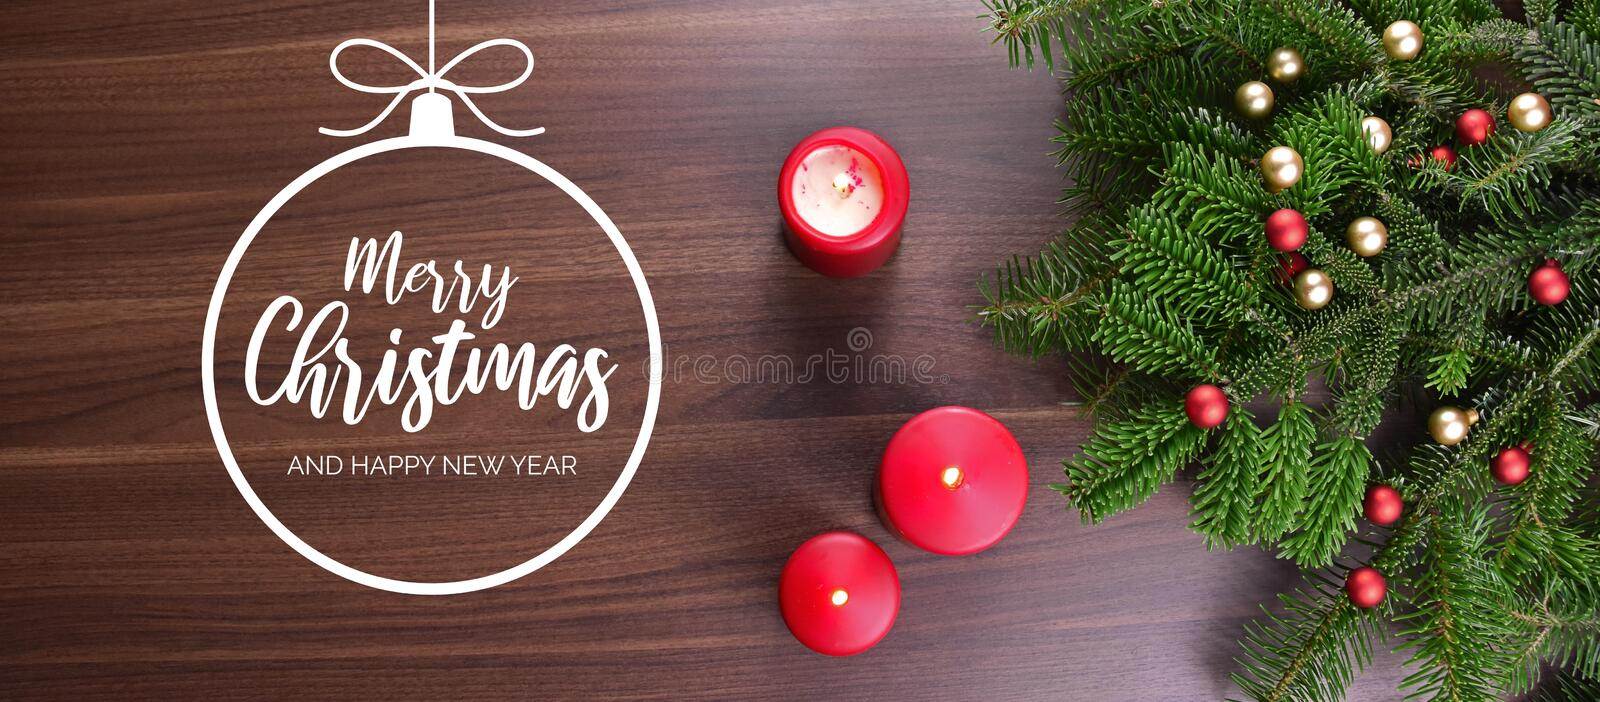 Merry Christmas and Happy New Year greeting card with red candle royalty free illustration